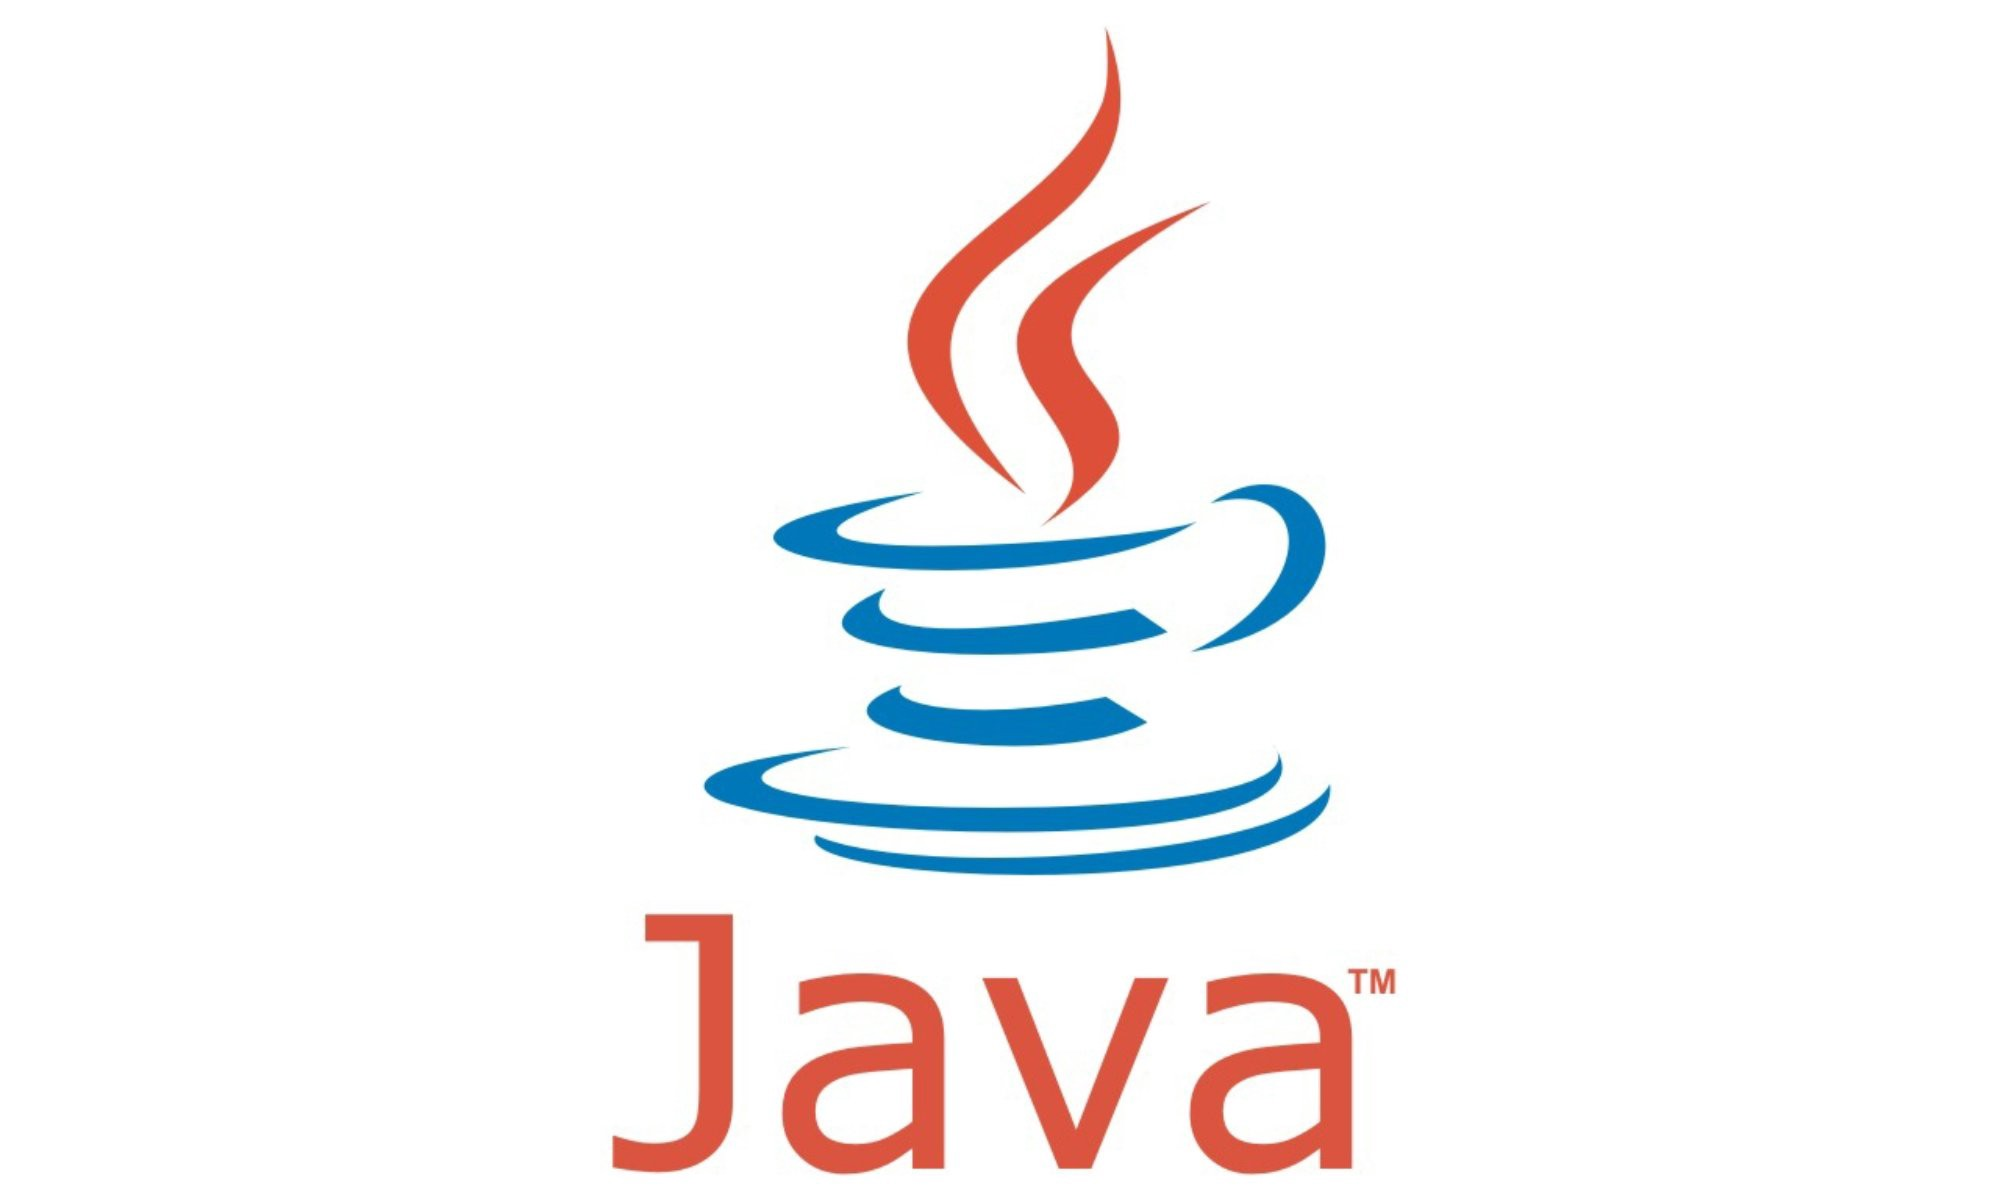 How To Make A Executable File From Your Java Code - Sulabh